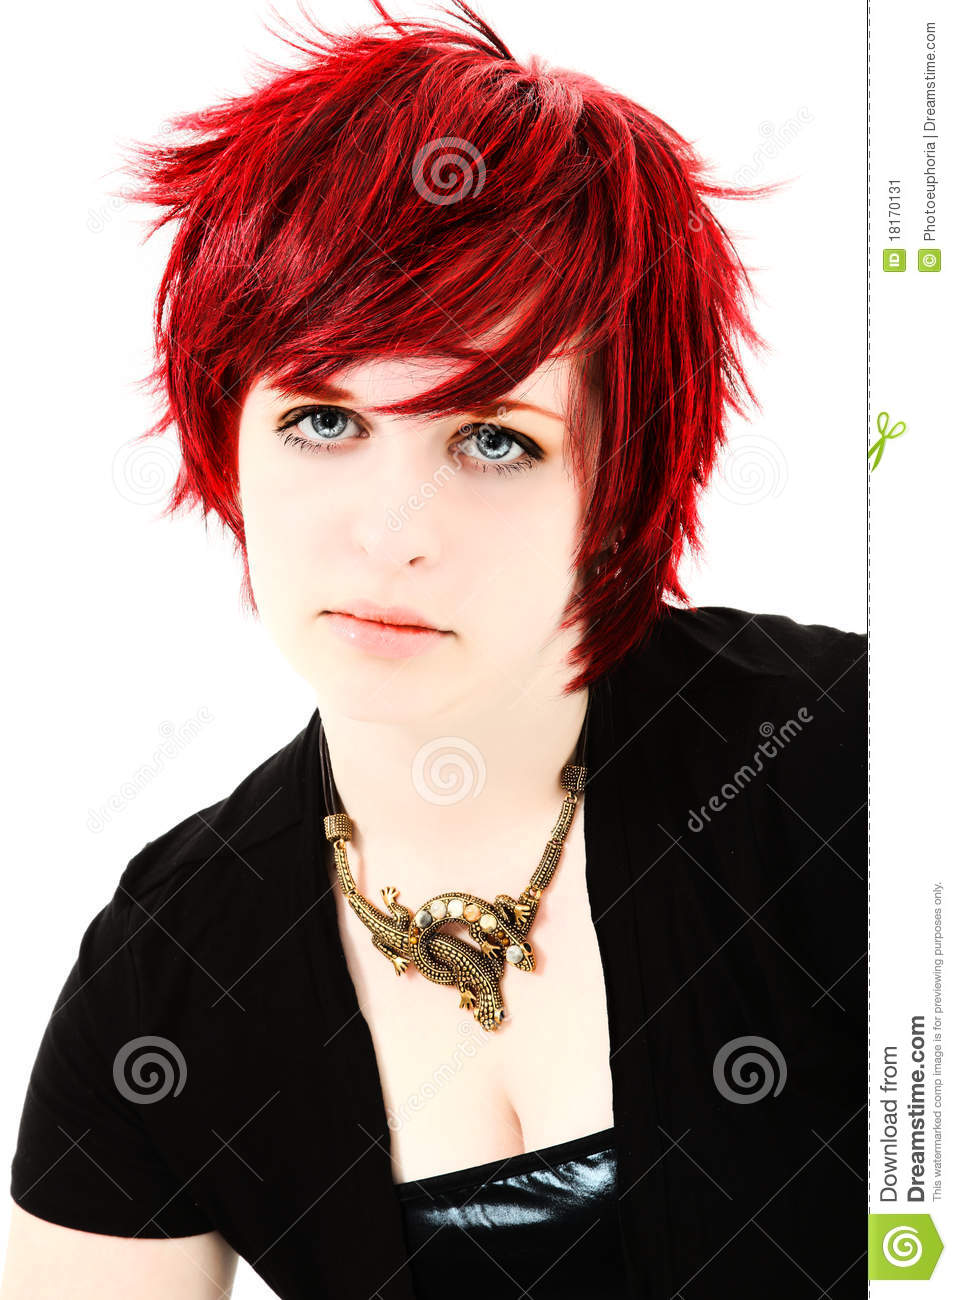 With you Young girl with red hair